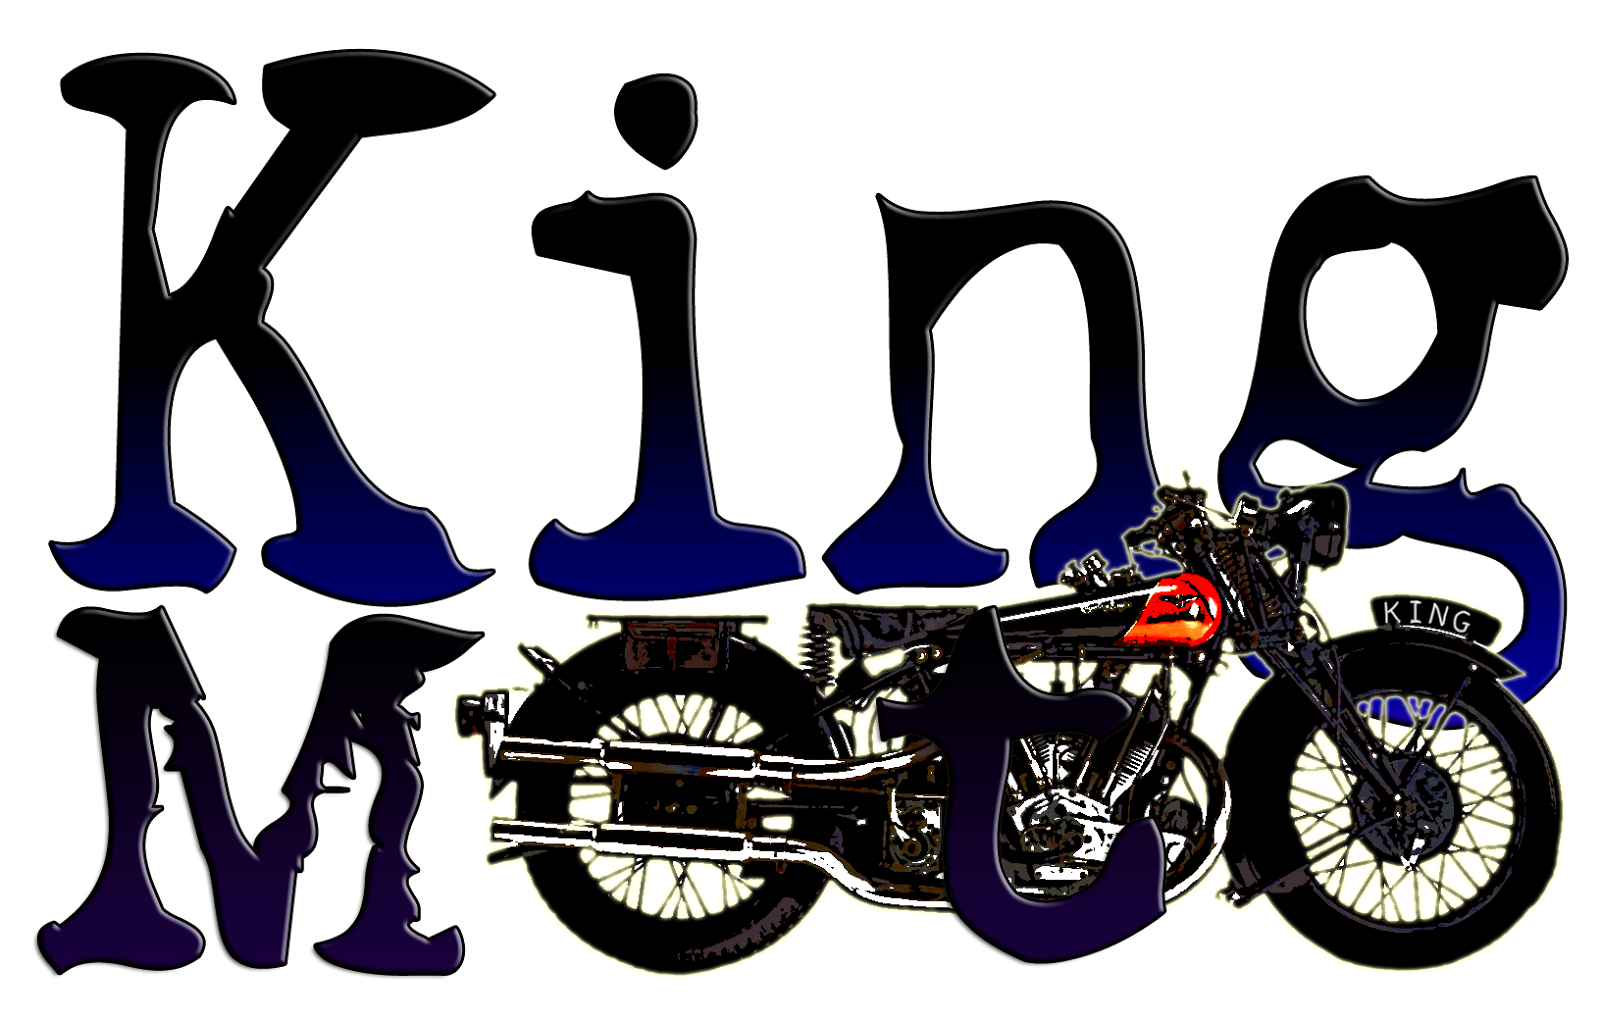 Mechanic clipart motorbike. Tim s motorcycle diaries